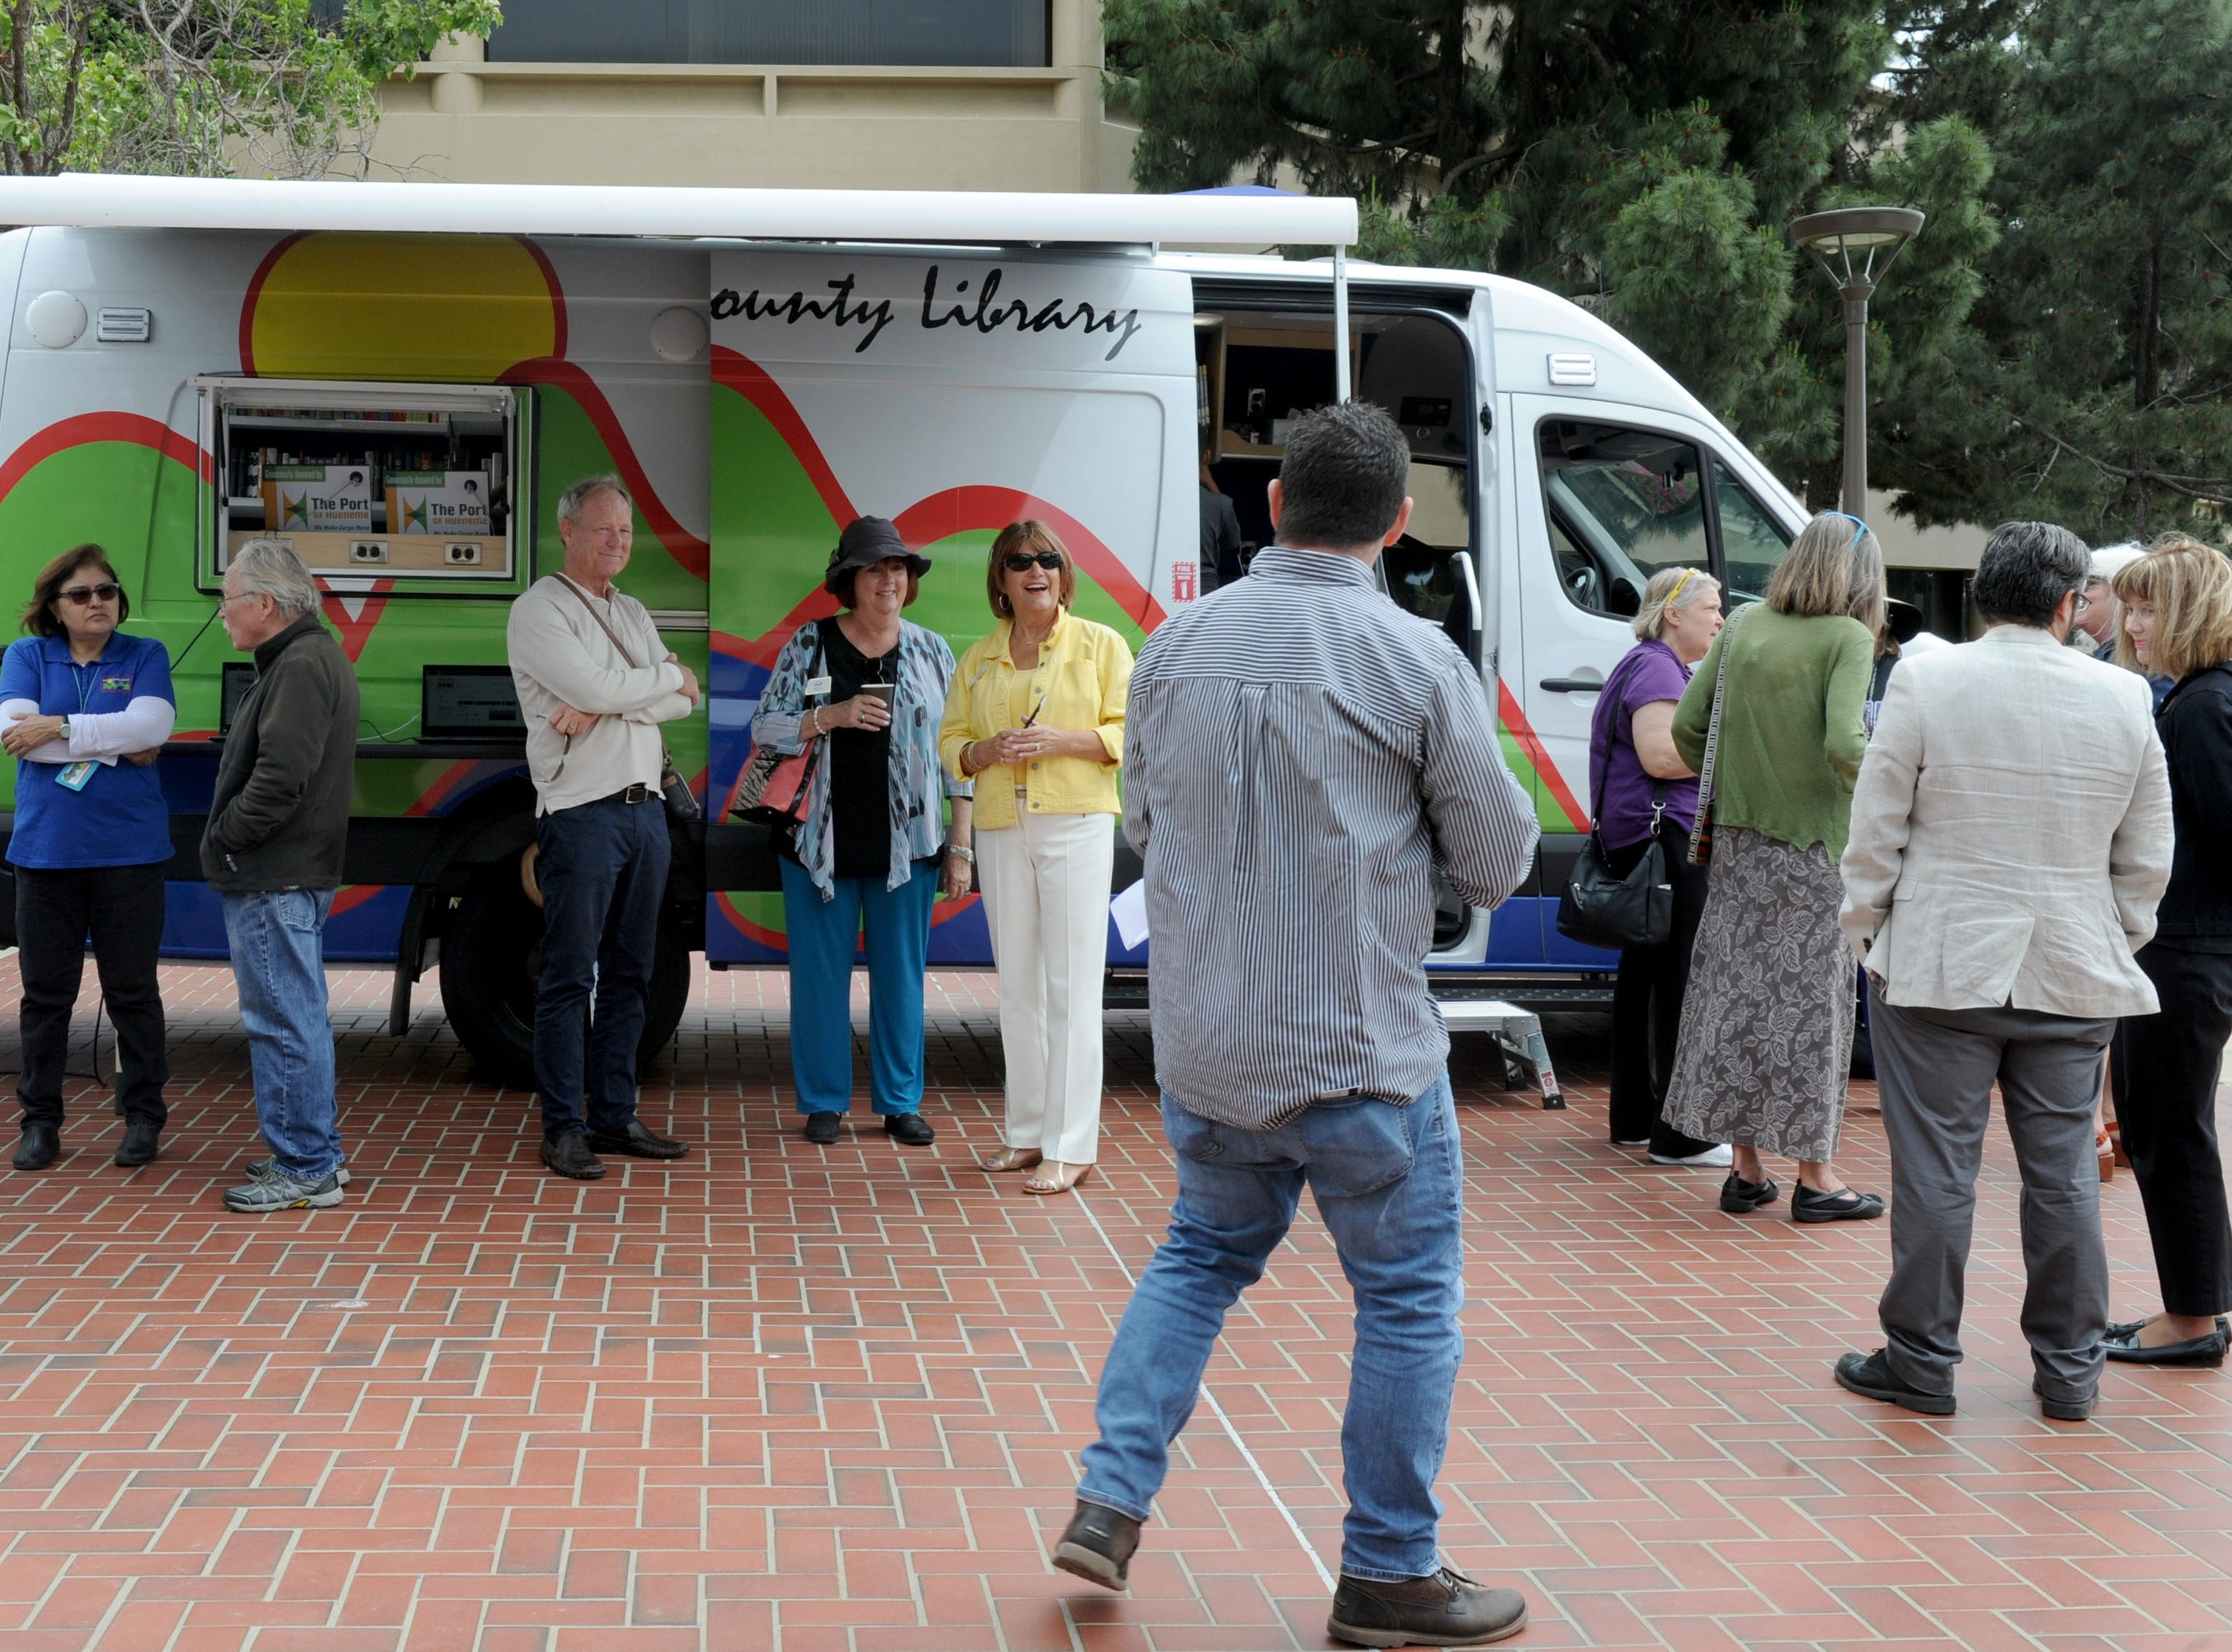 A large group of people line up Tuesday to tour the Ventura County Library's new mobile library, a 26-foot, fuel-efficient vehicle stocked with many of the same services found in a traditional library.